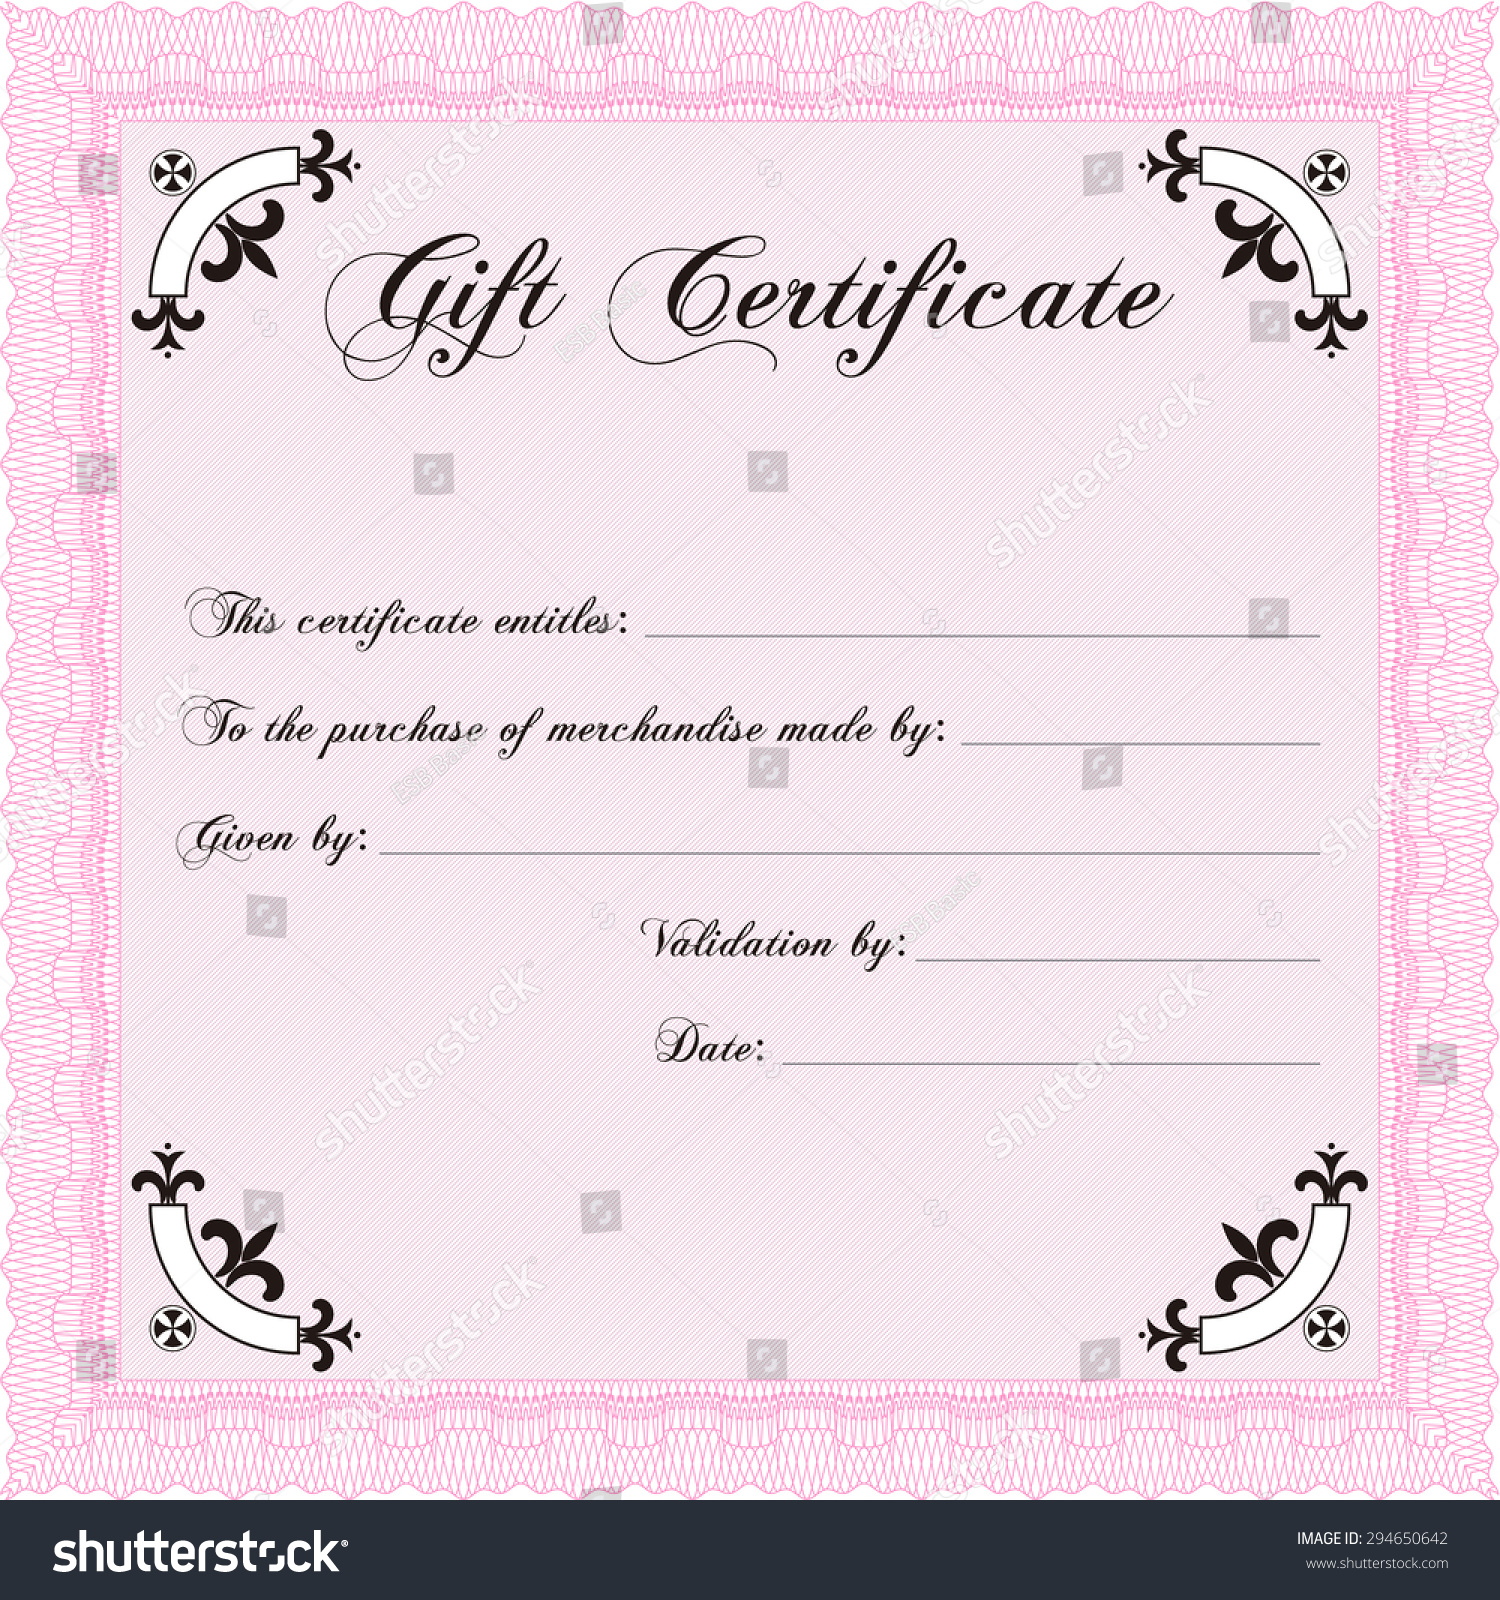 Formal Gift Certificate Template Excellent Design Vector – Formal Certificate Template